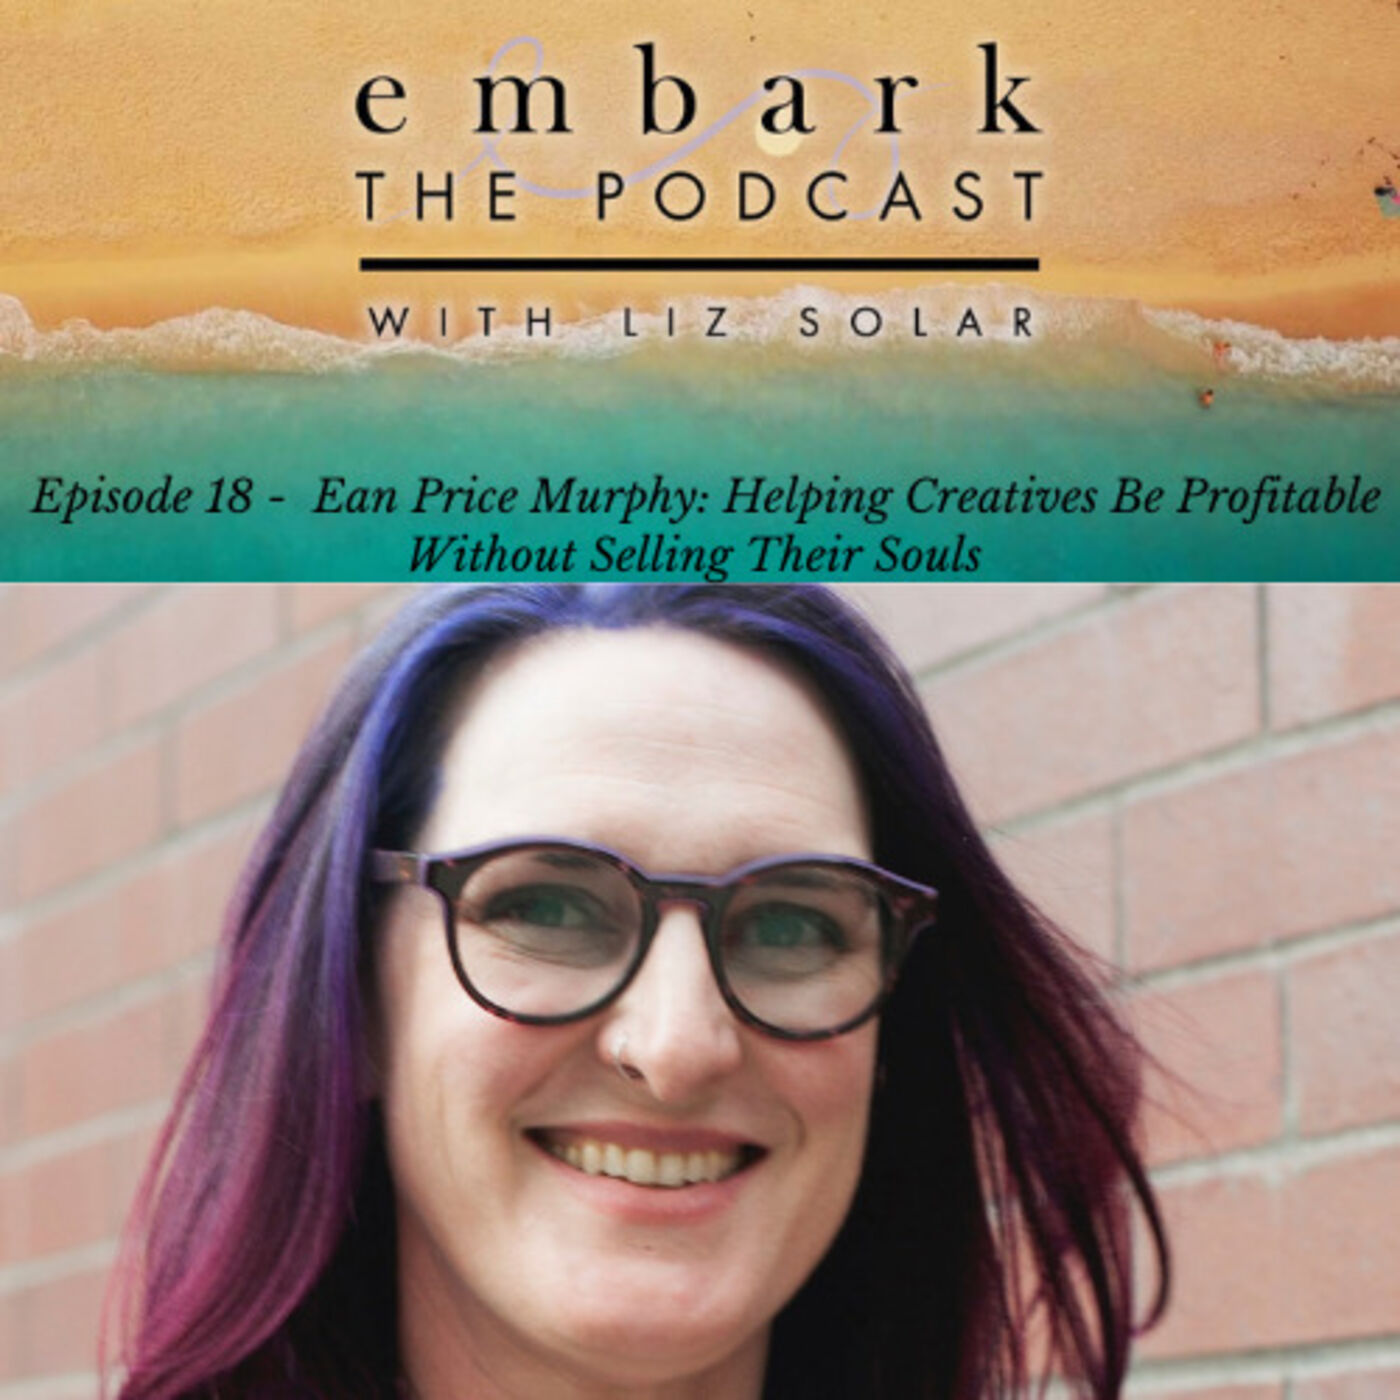 Ean Price Murphy: Helping Creatives Be Profitable without Selling Their Souls